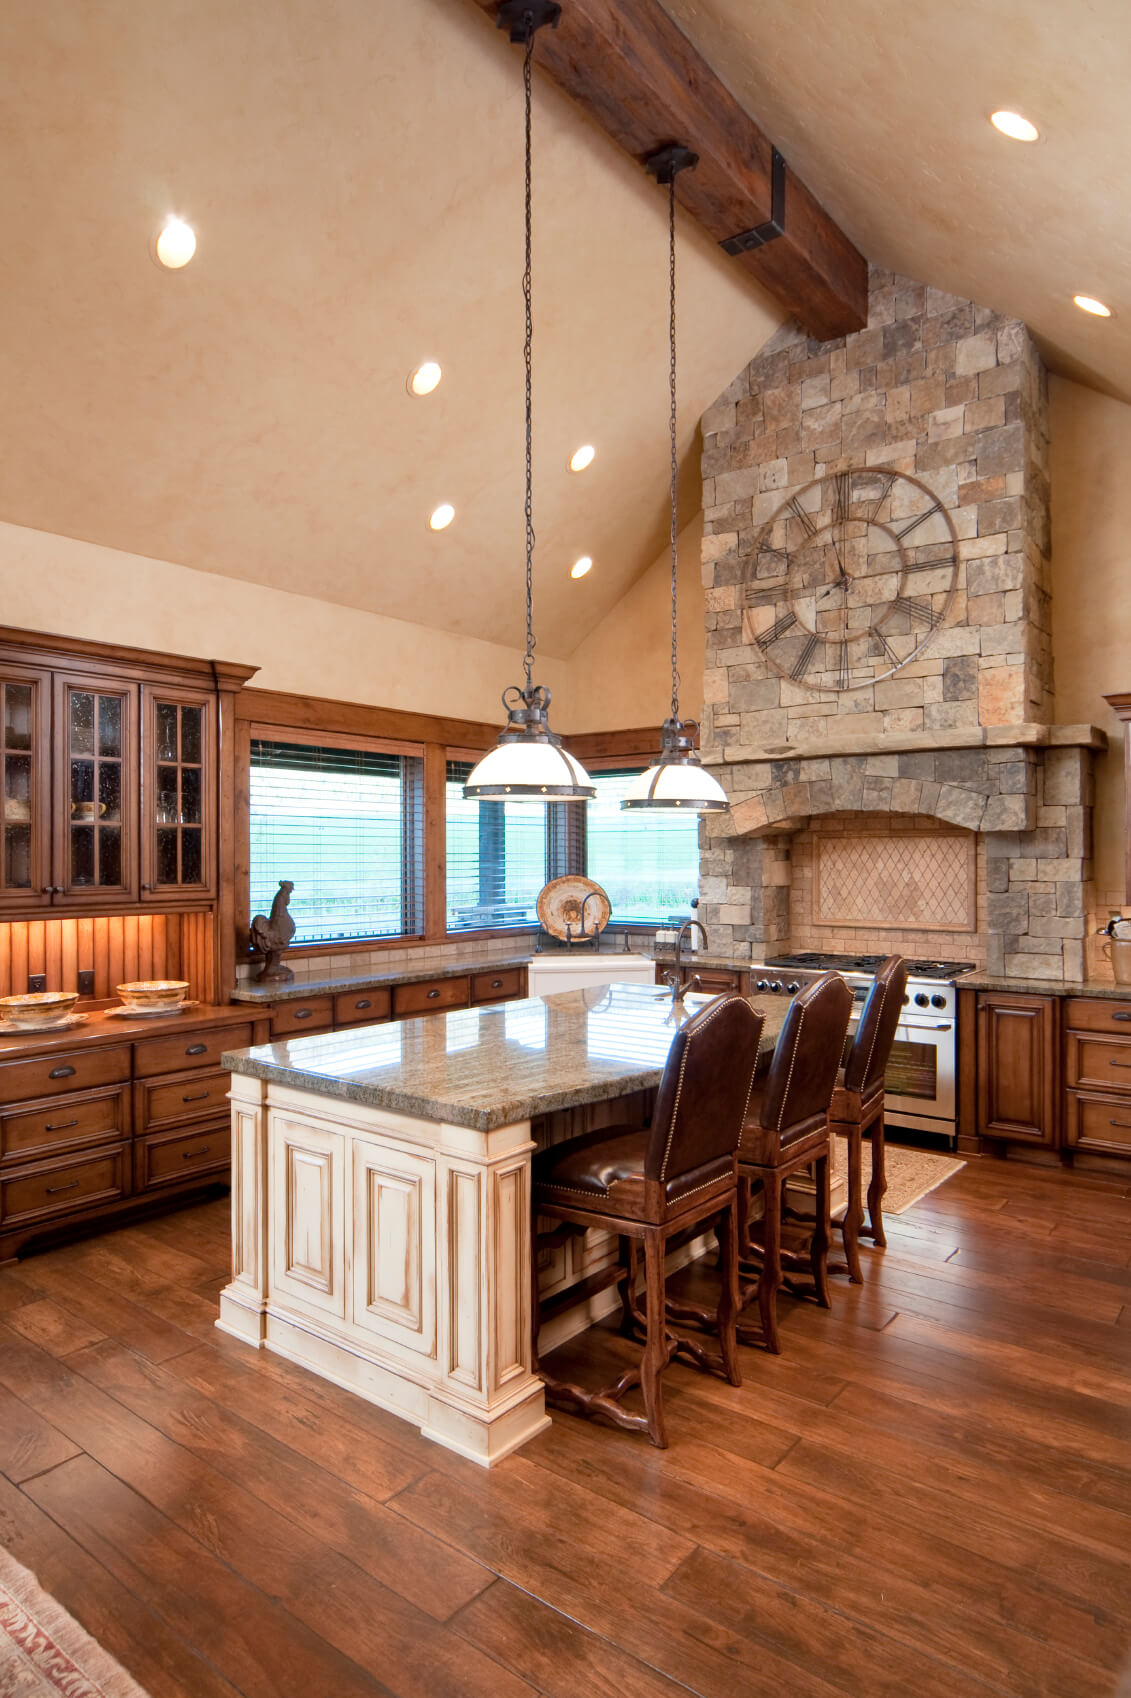 Wood Kitchen Designs ~ Luxury dream kitchen designs worth every penny photos